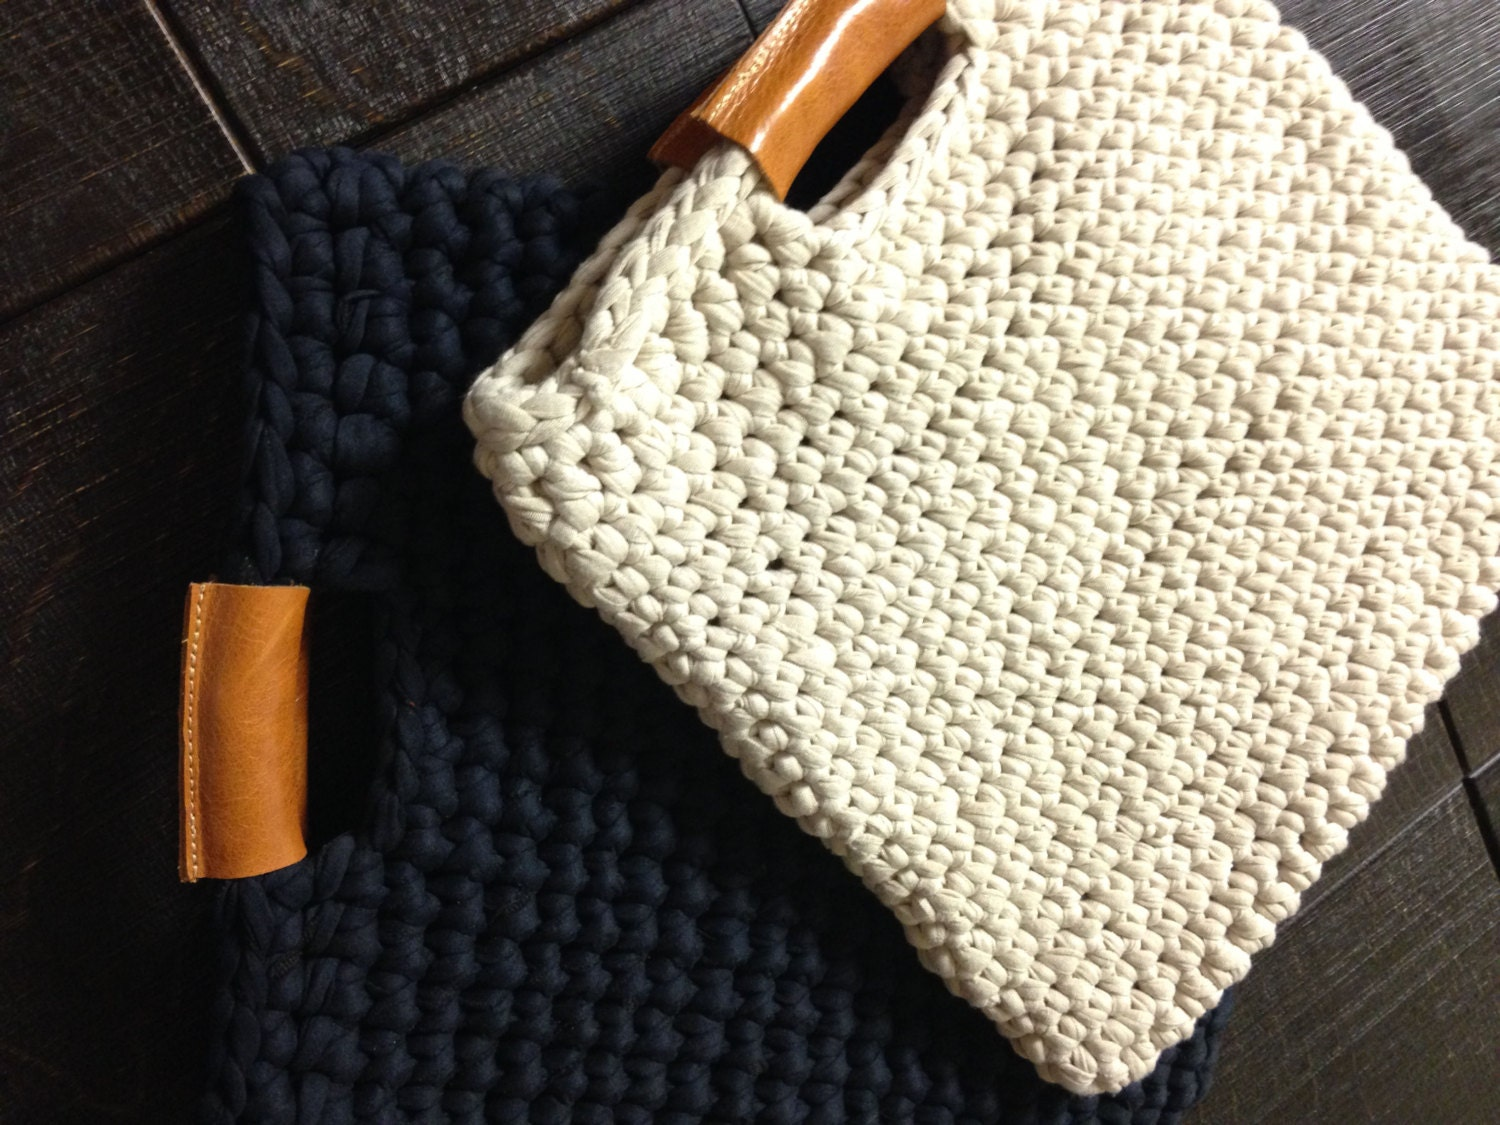 Leather Crochet Bag : Chunky crochet bag with real leather handles by StudioInBudapest